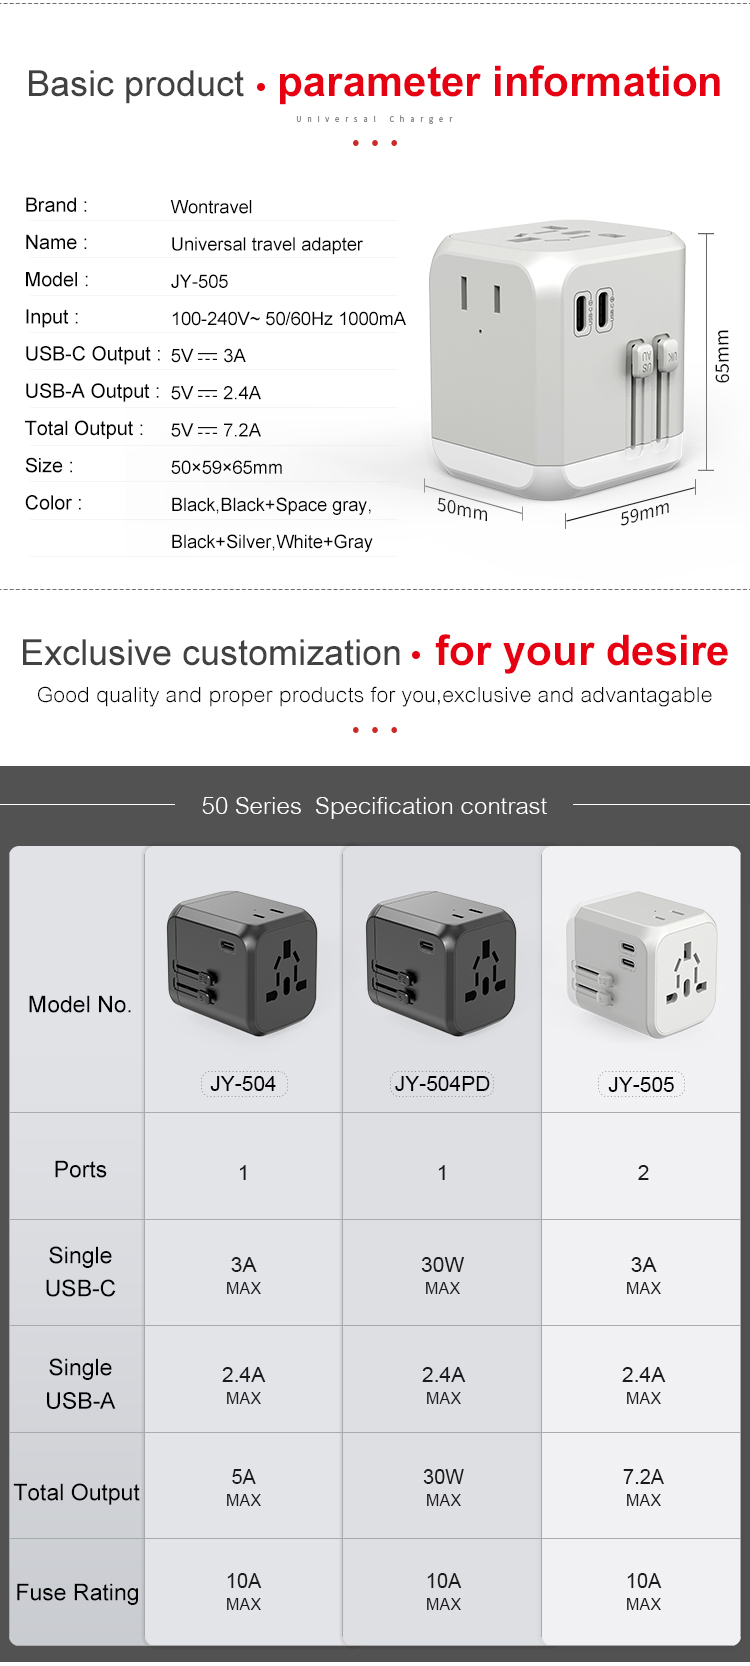 World travel 7200mA USB quick charger Type C Dual AC socket electrical plugs adaptor universal power adapter